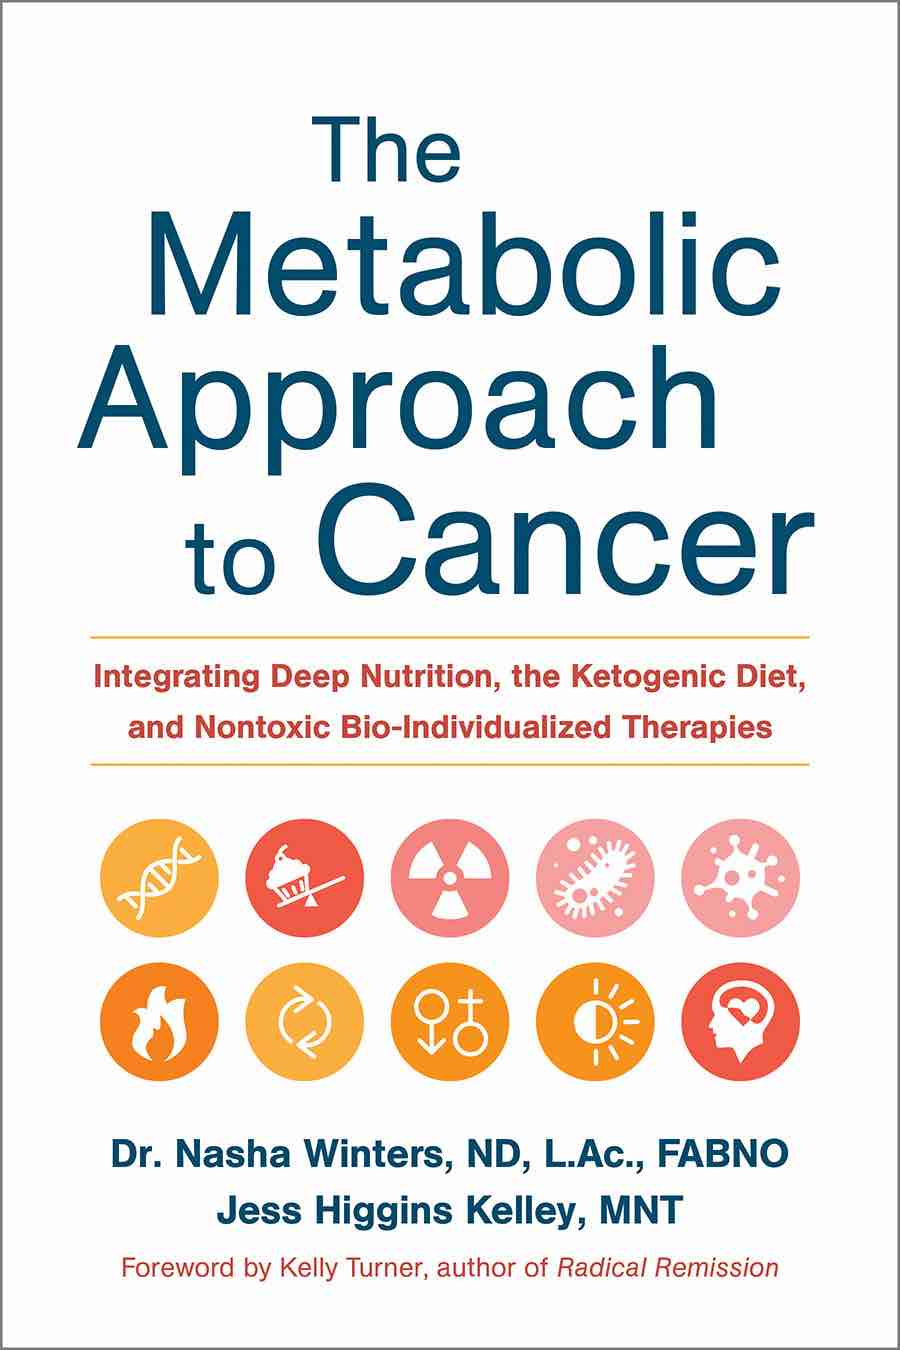 The Metabolic Approach to Cancer